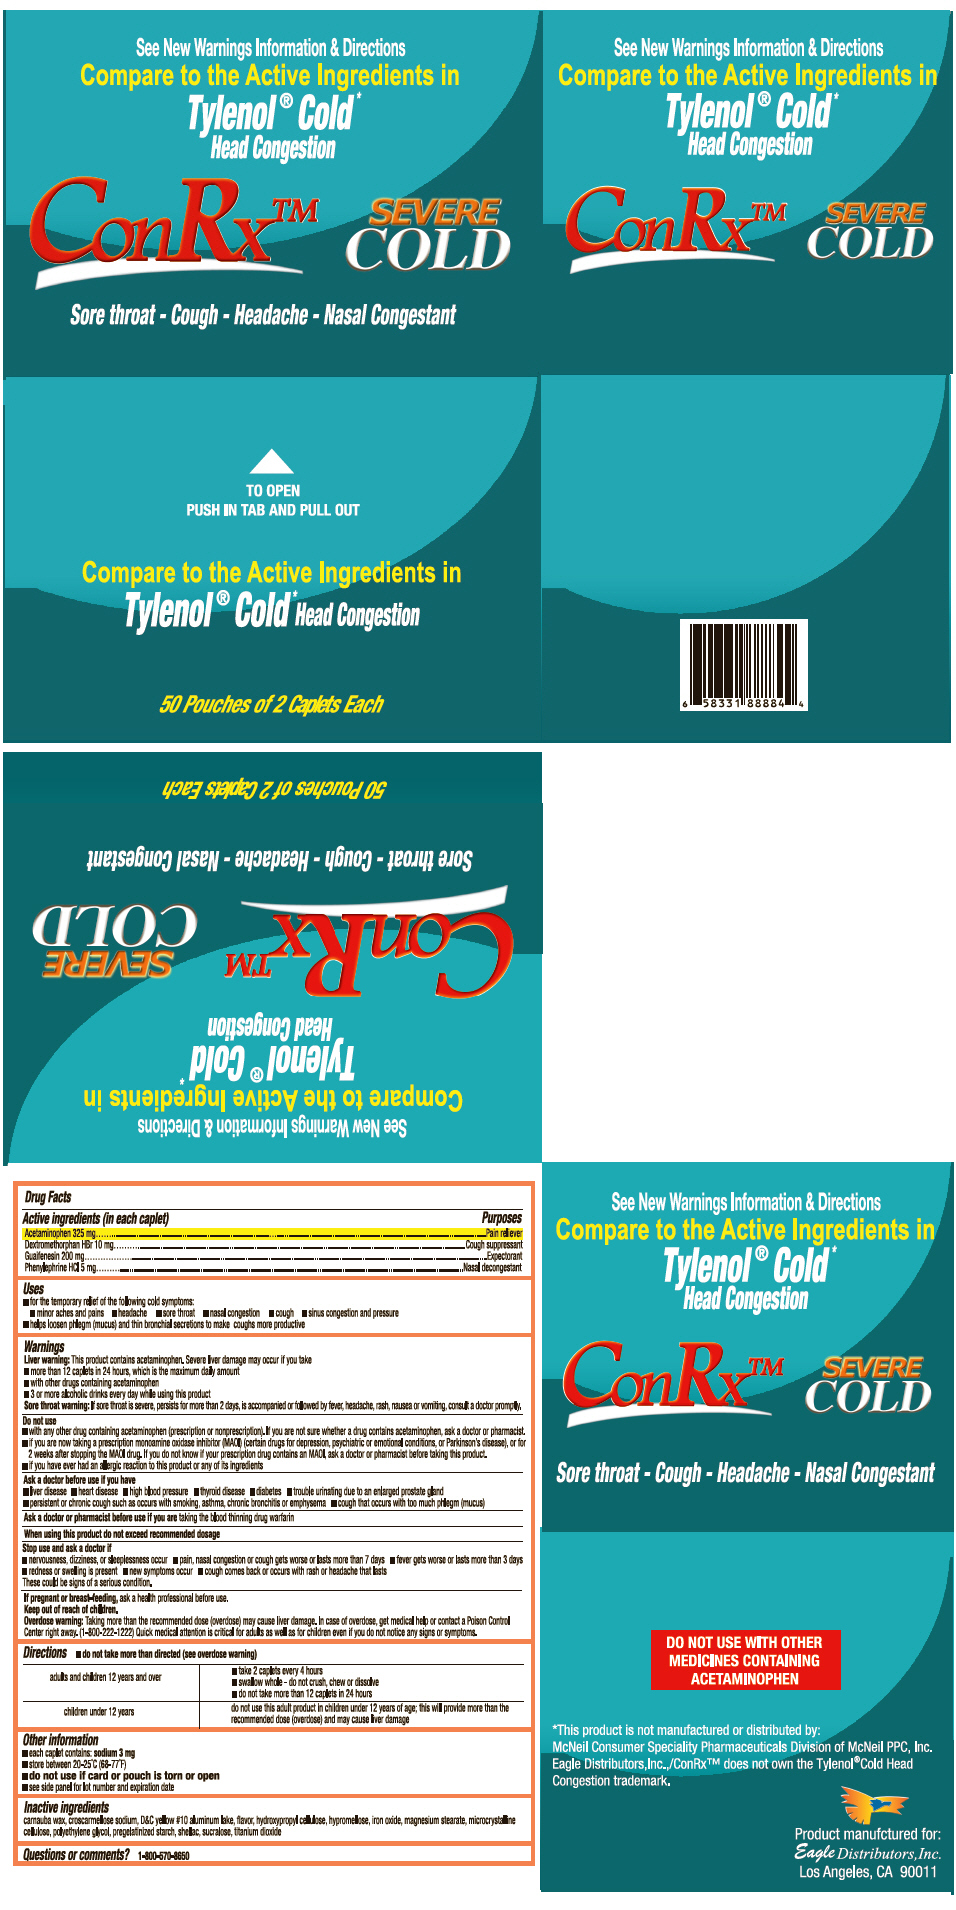 Conrx Cold (Acetaminophen, Dextromethorphan Hydrobromide, Guaifenesin, And Phenylephrine Hydrochloride) Tablet [Eagle Distributors,inc.]